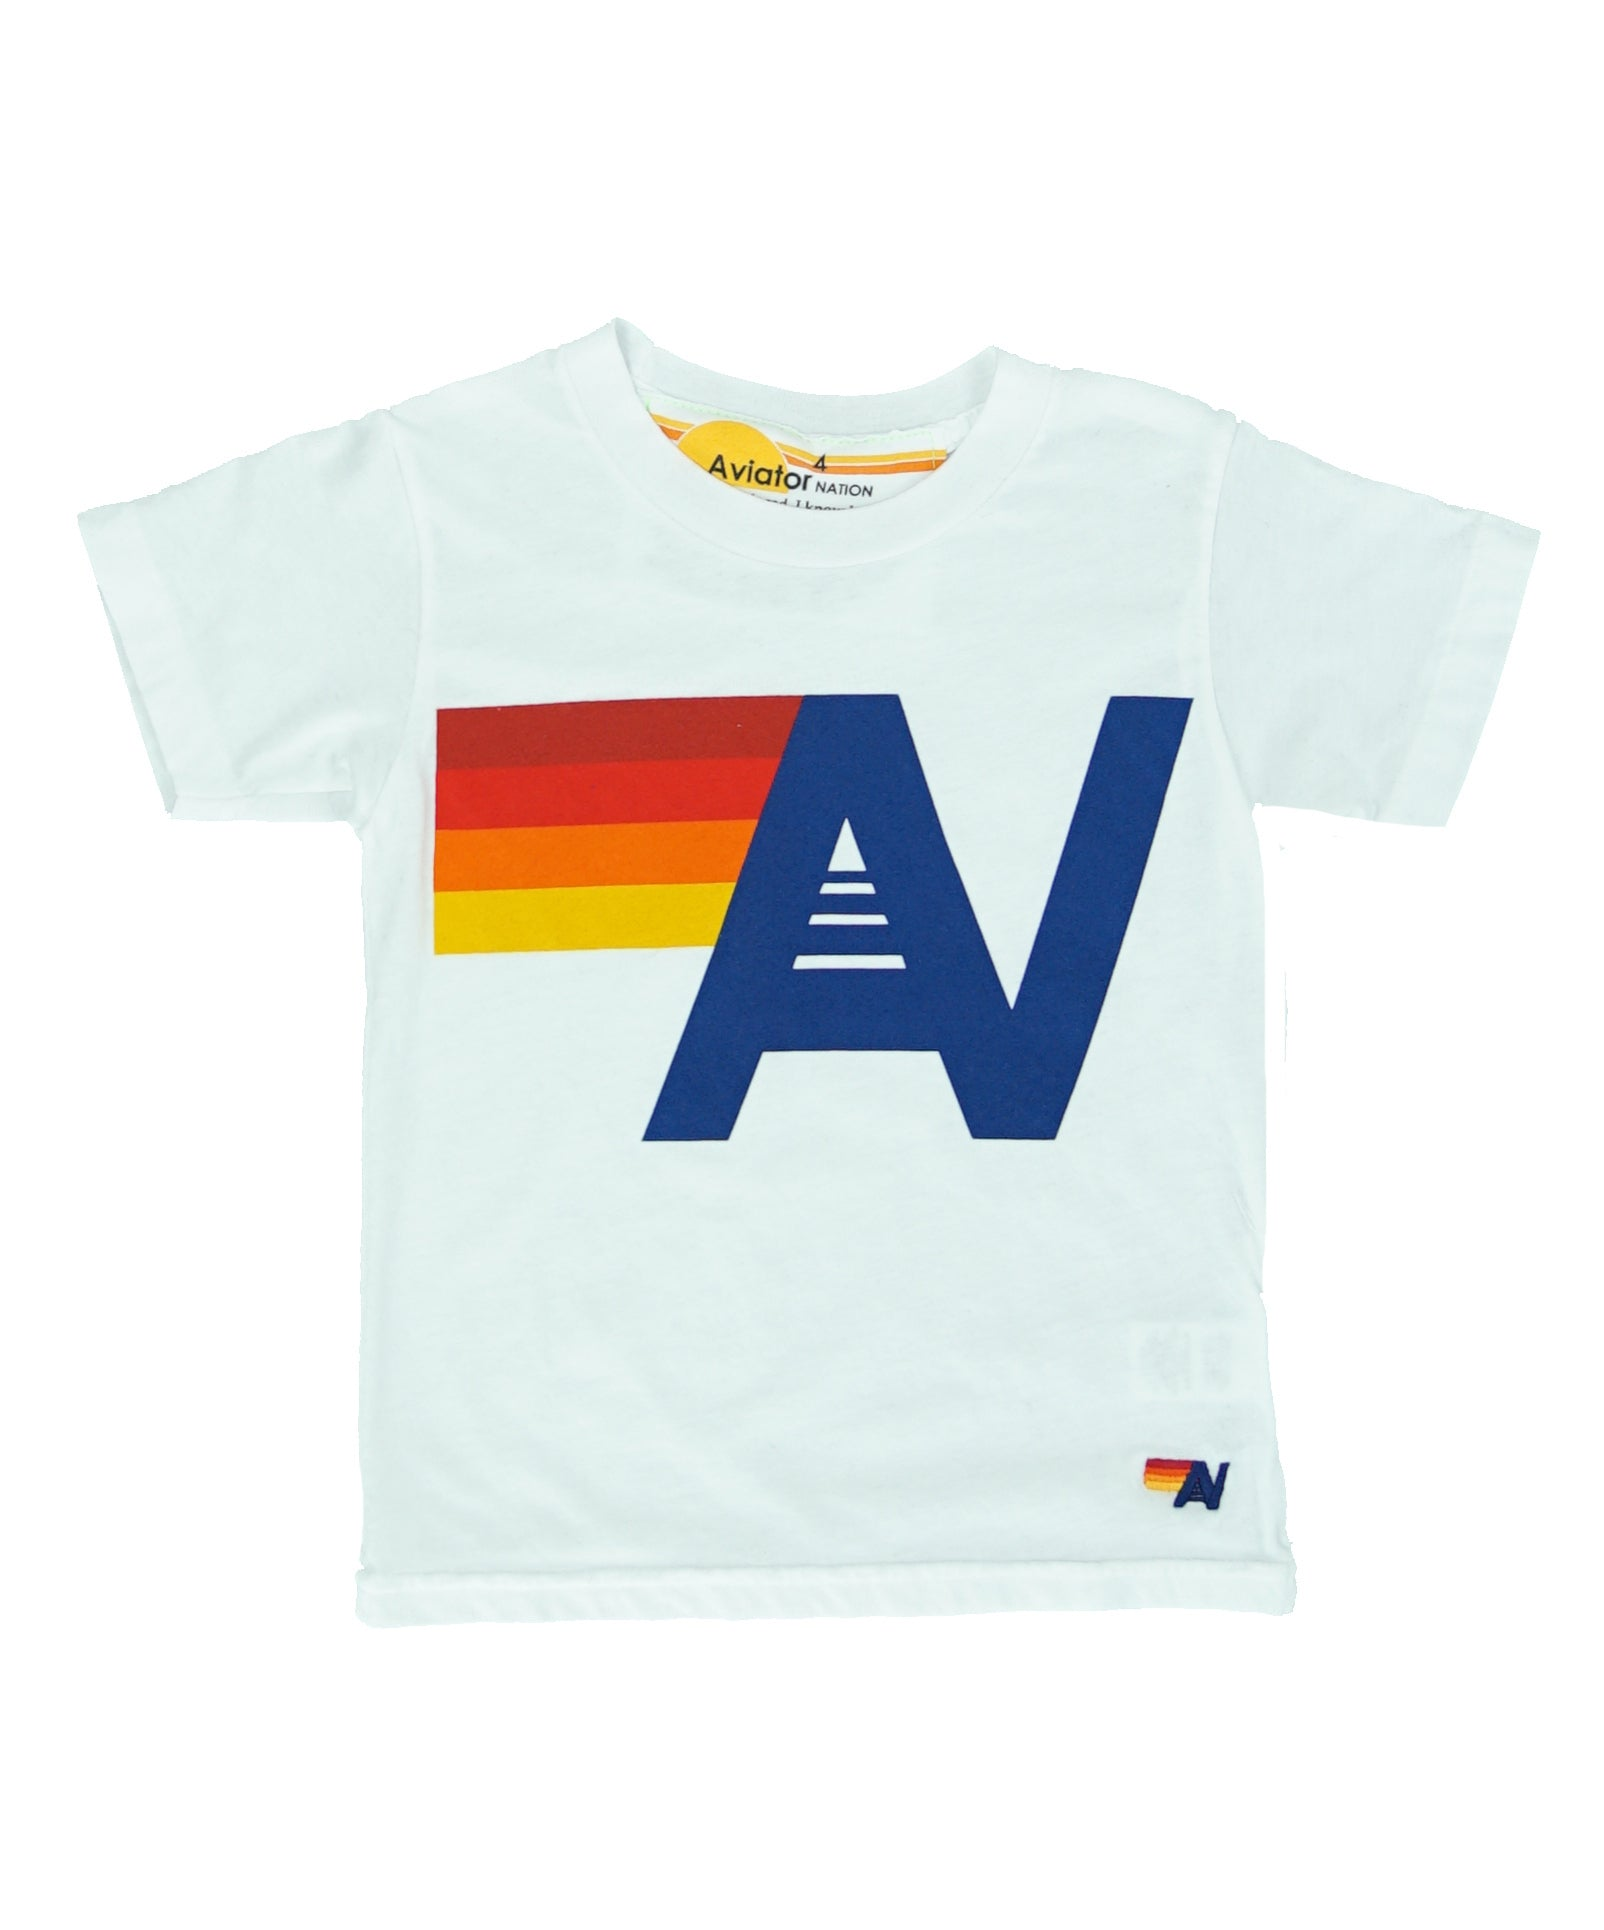 AVIATOR NATION KID'S LOGO TEE - WHITE